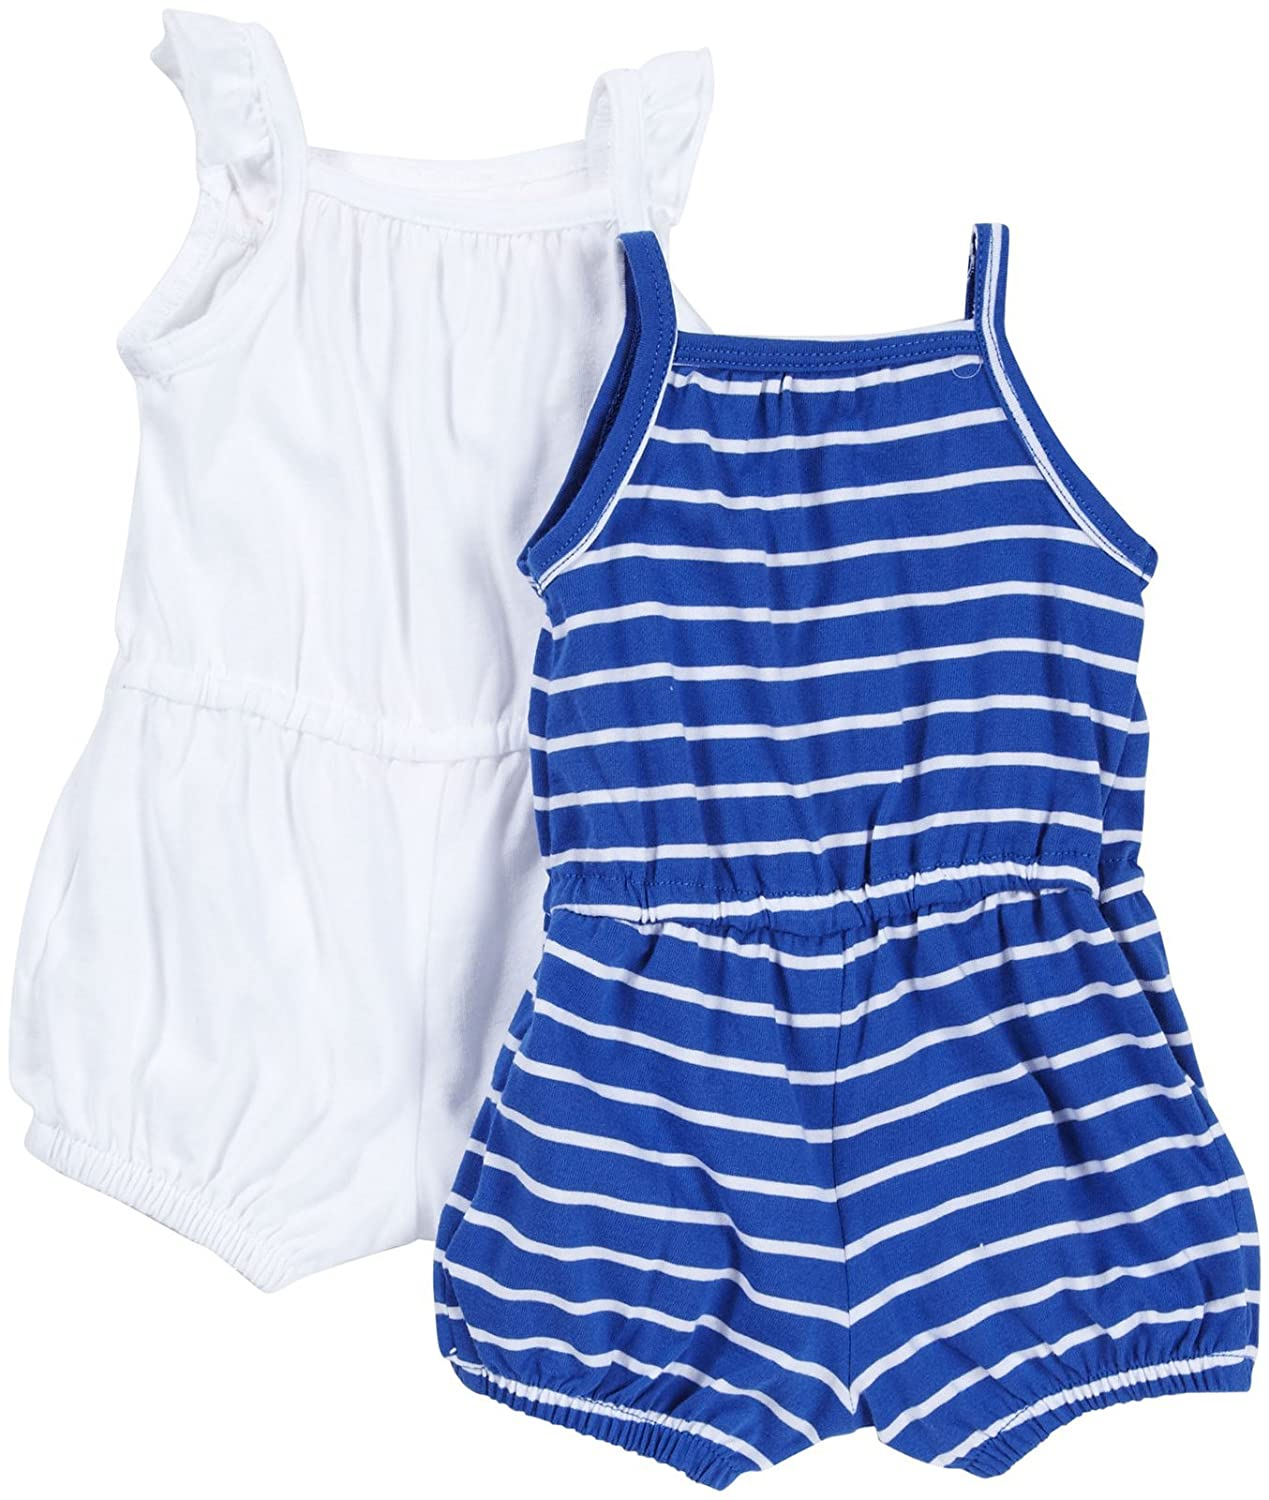 Carters Baby Girls 2-pack Jersey Rompers